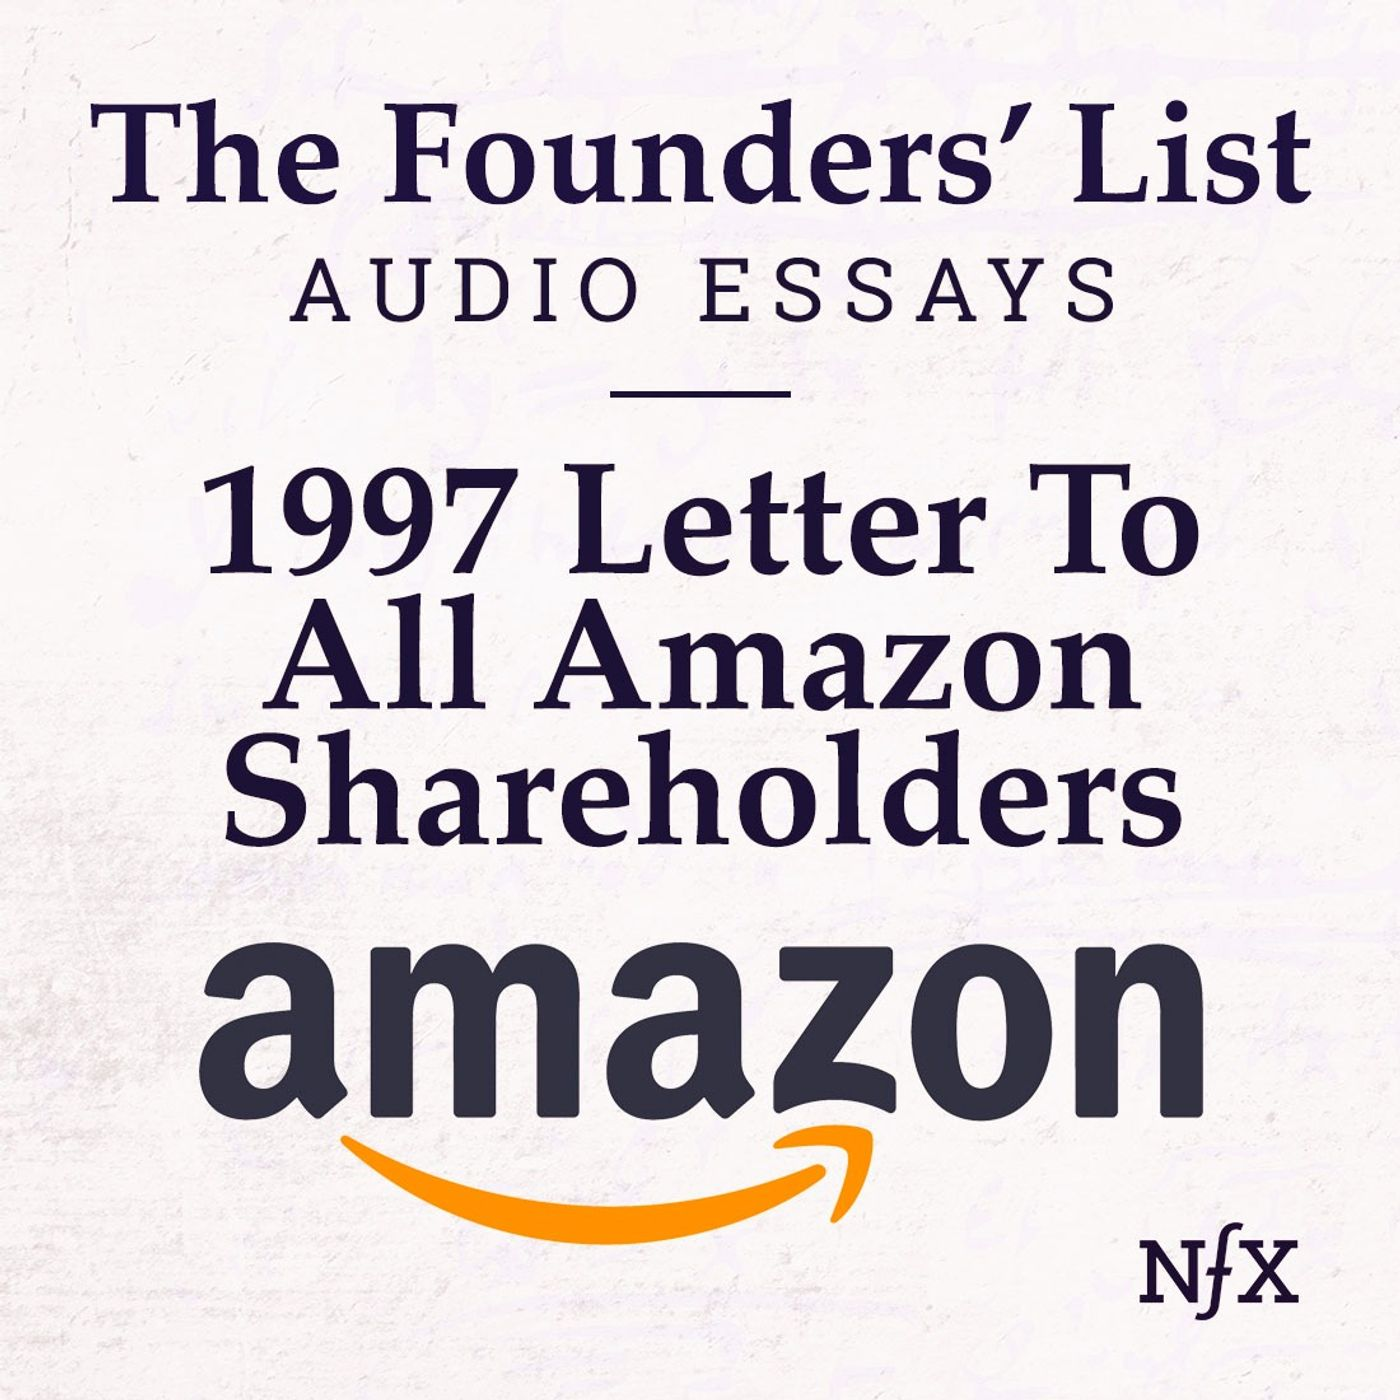 The Founders' List: 1997 Letter to Amazon Shareholders